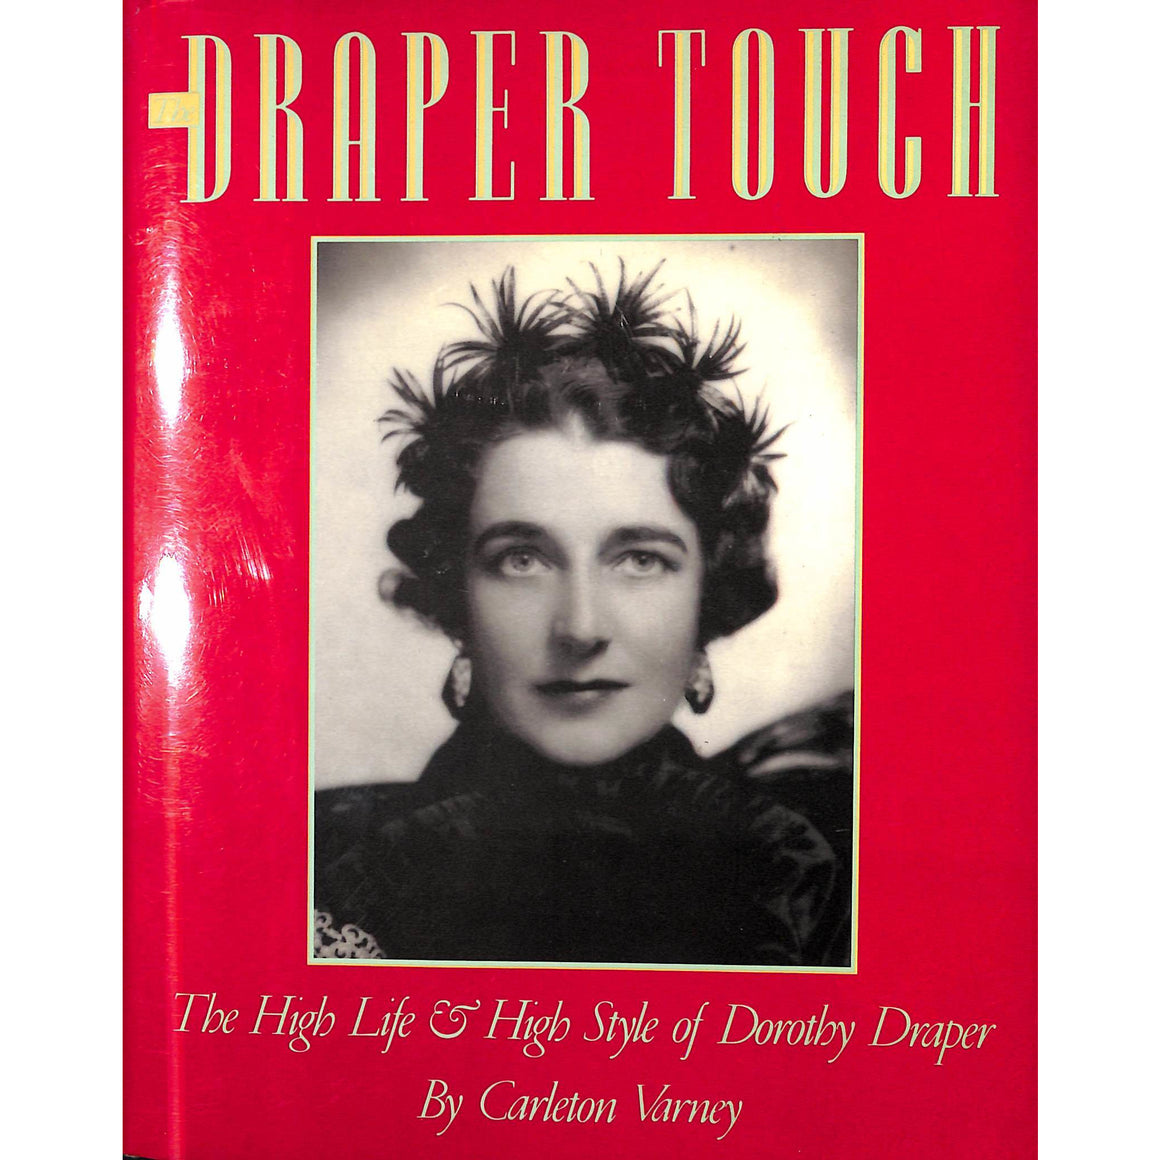 Draper Touch The High Life & High Style of Dorothy Draper